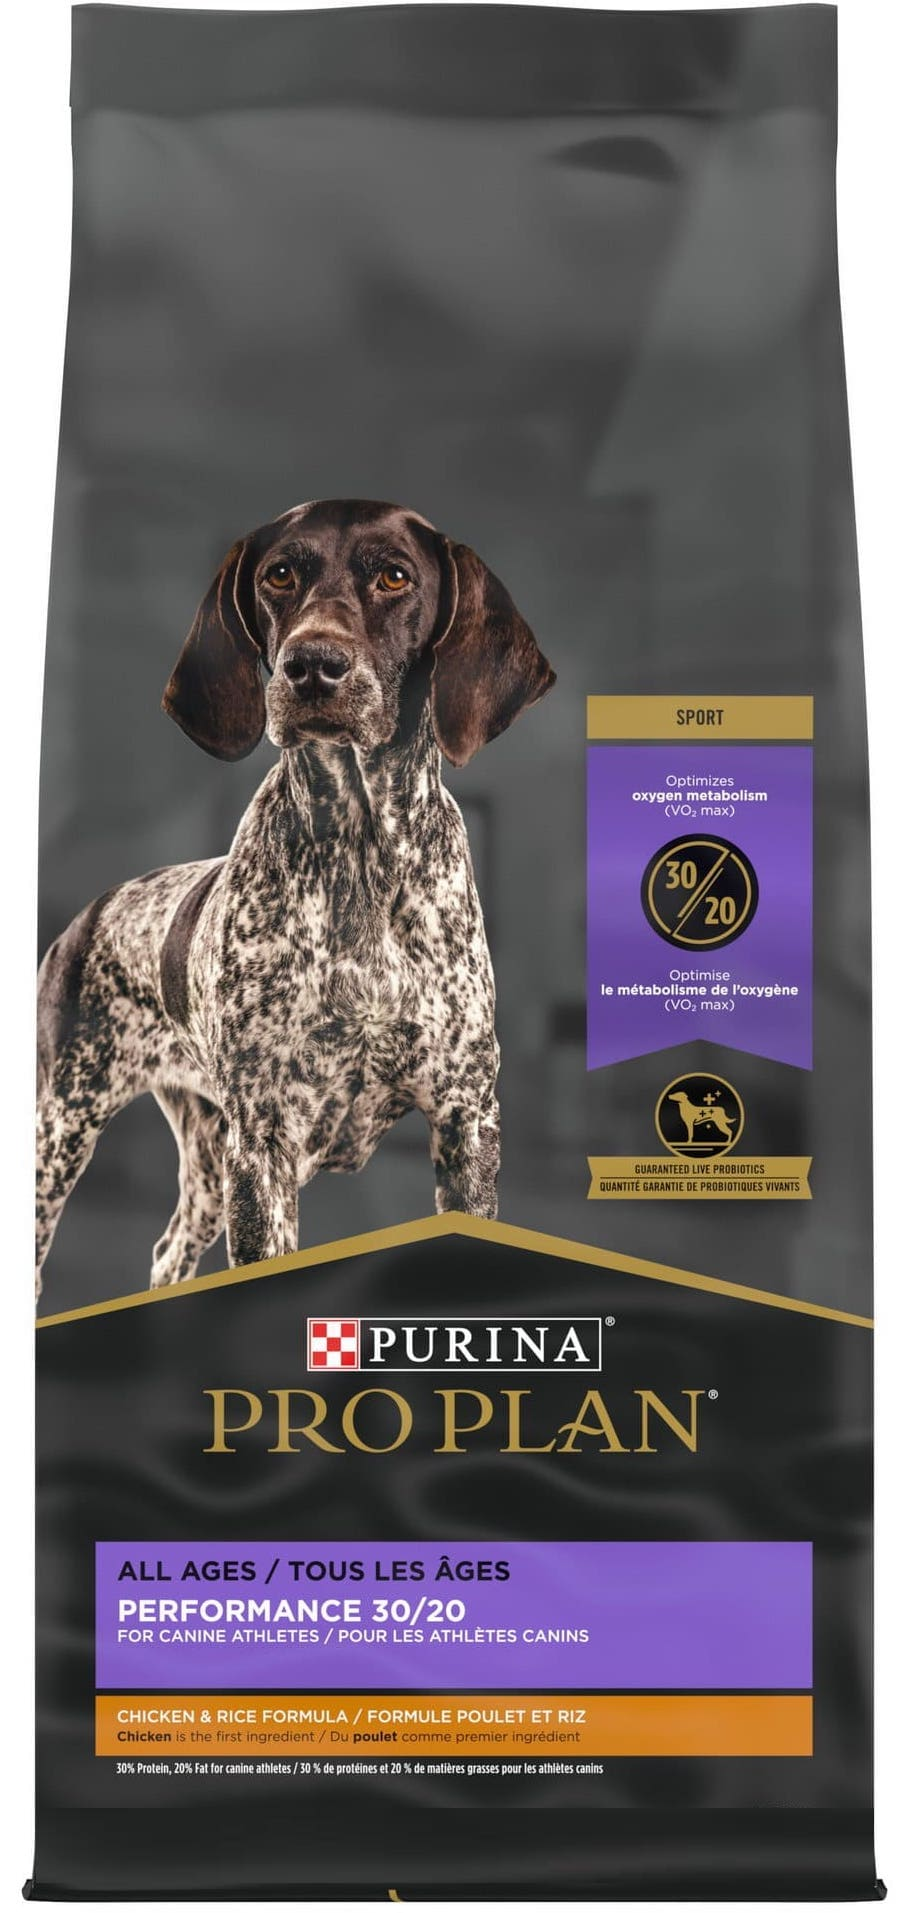 Purina Pro Plan Sport All Life Stages Performance 30/20 37.5 lbs Chicken & Rice 1